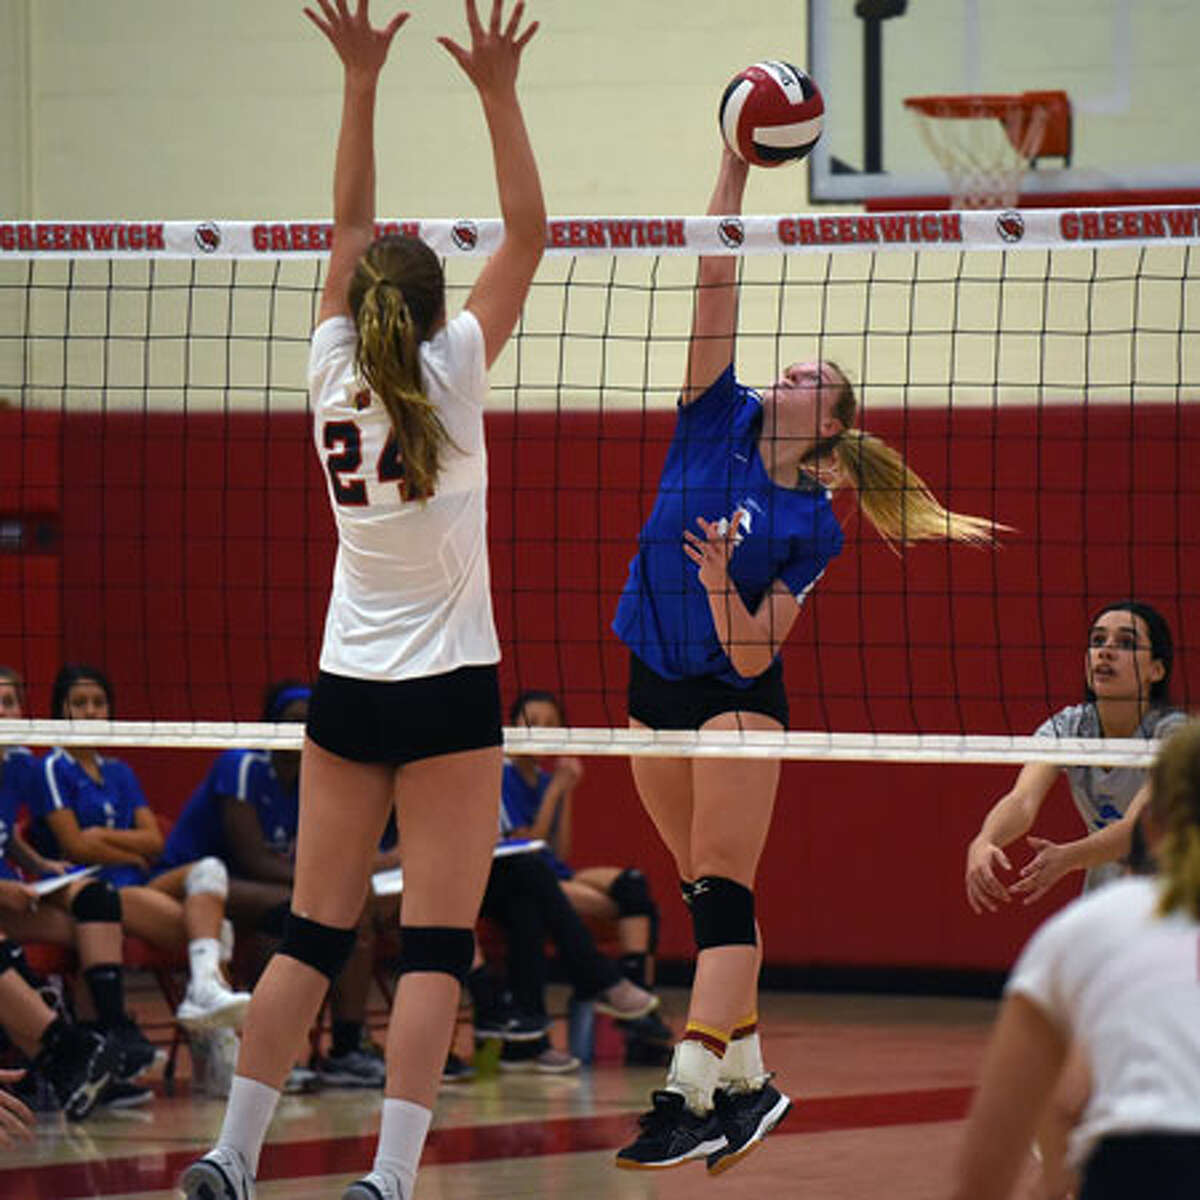 Darien senior co-captain Lindsay Bennett puts down a point during the Wave's 3-0 win over Greenwich in the FCIAC quarterfinals on Tuesday. - Dave Stewart photo